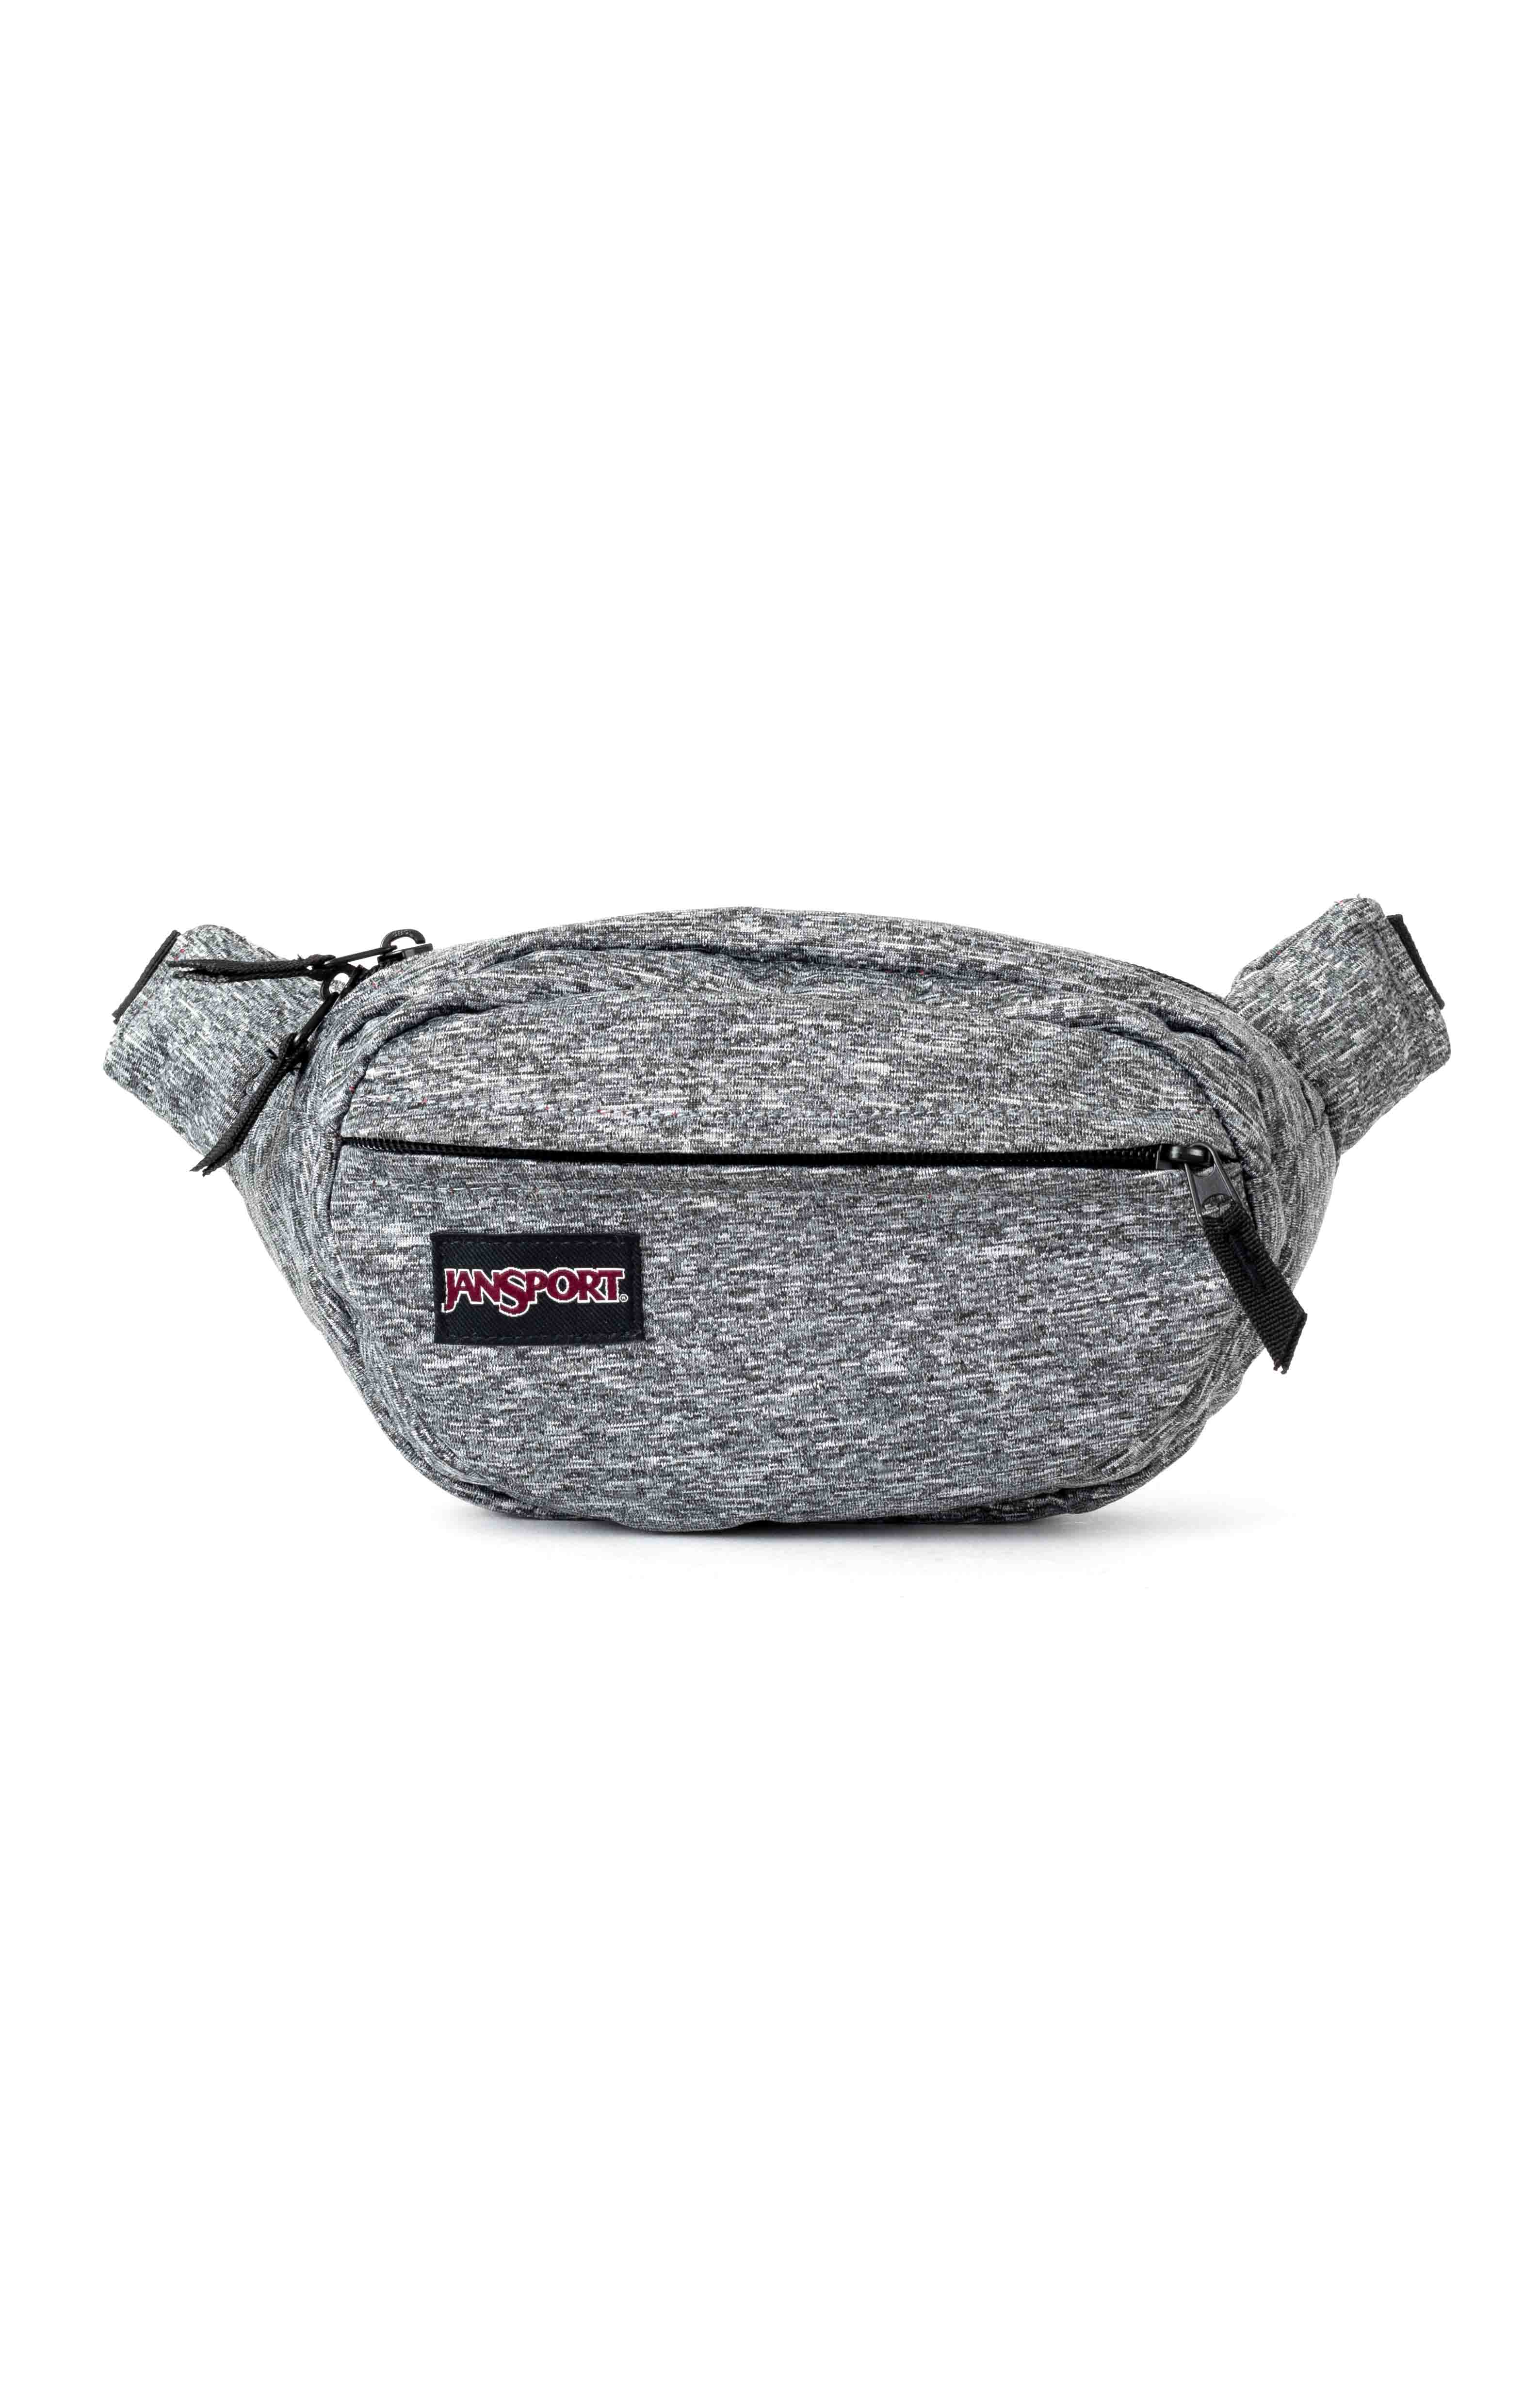 Fifth Avenue FX Fanny Pack - Black Woven Knit